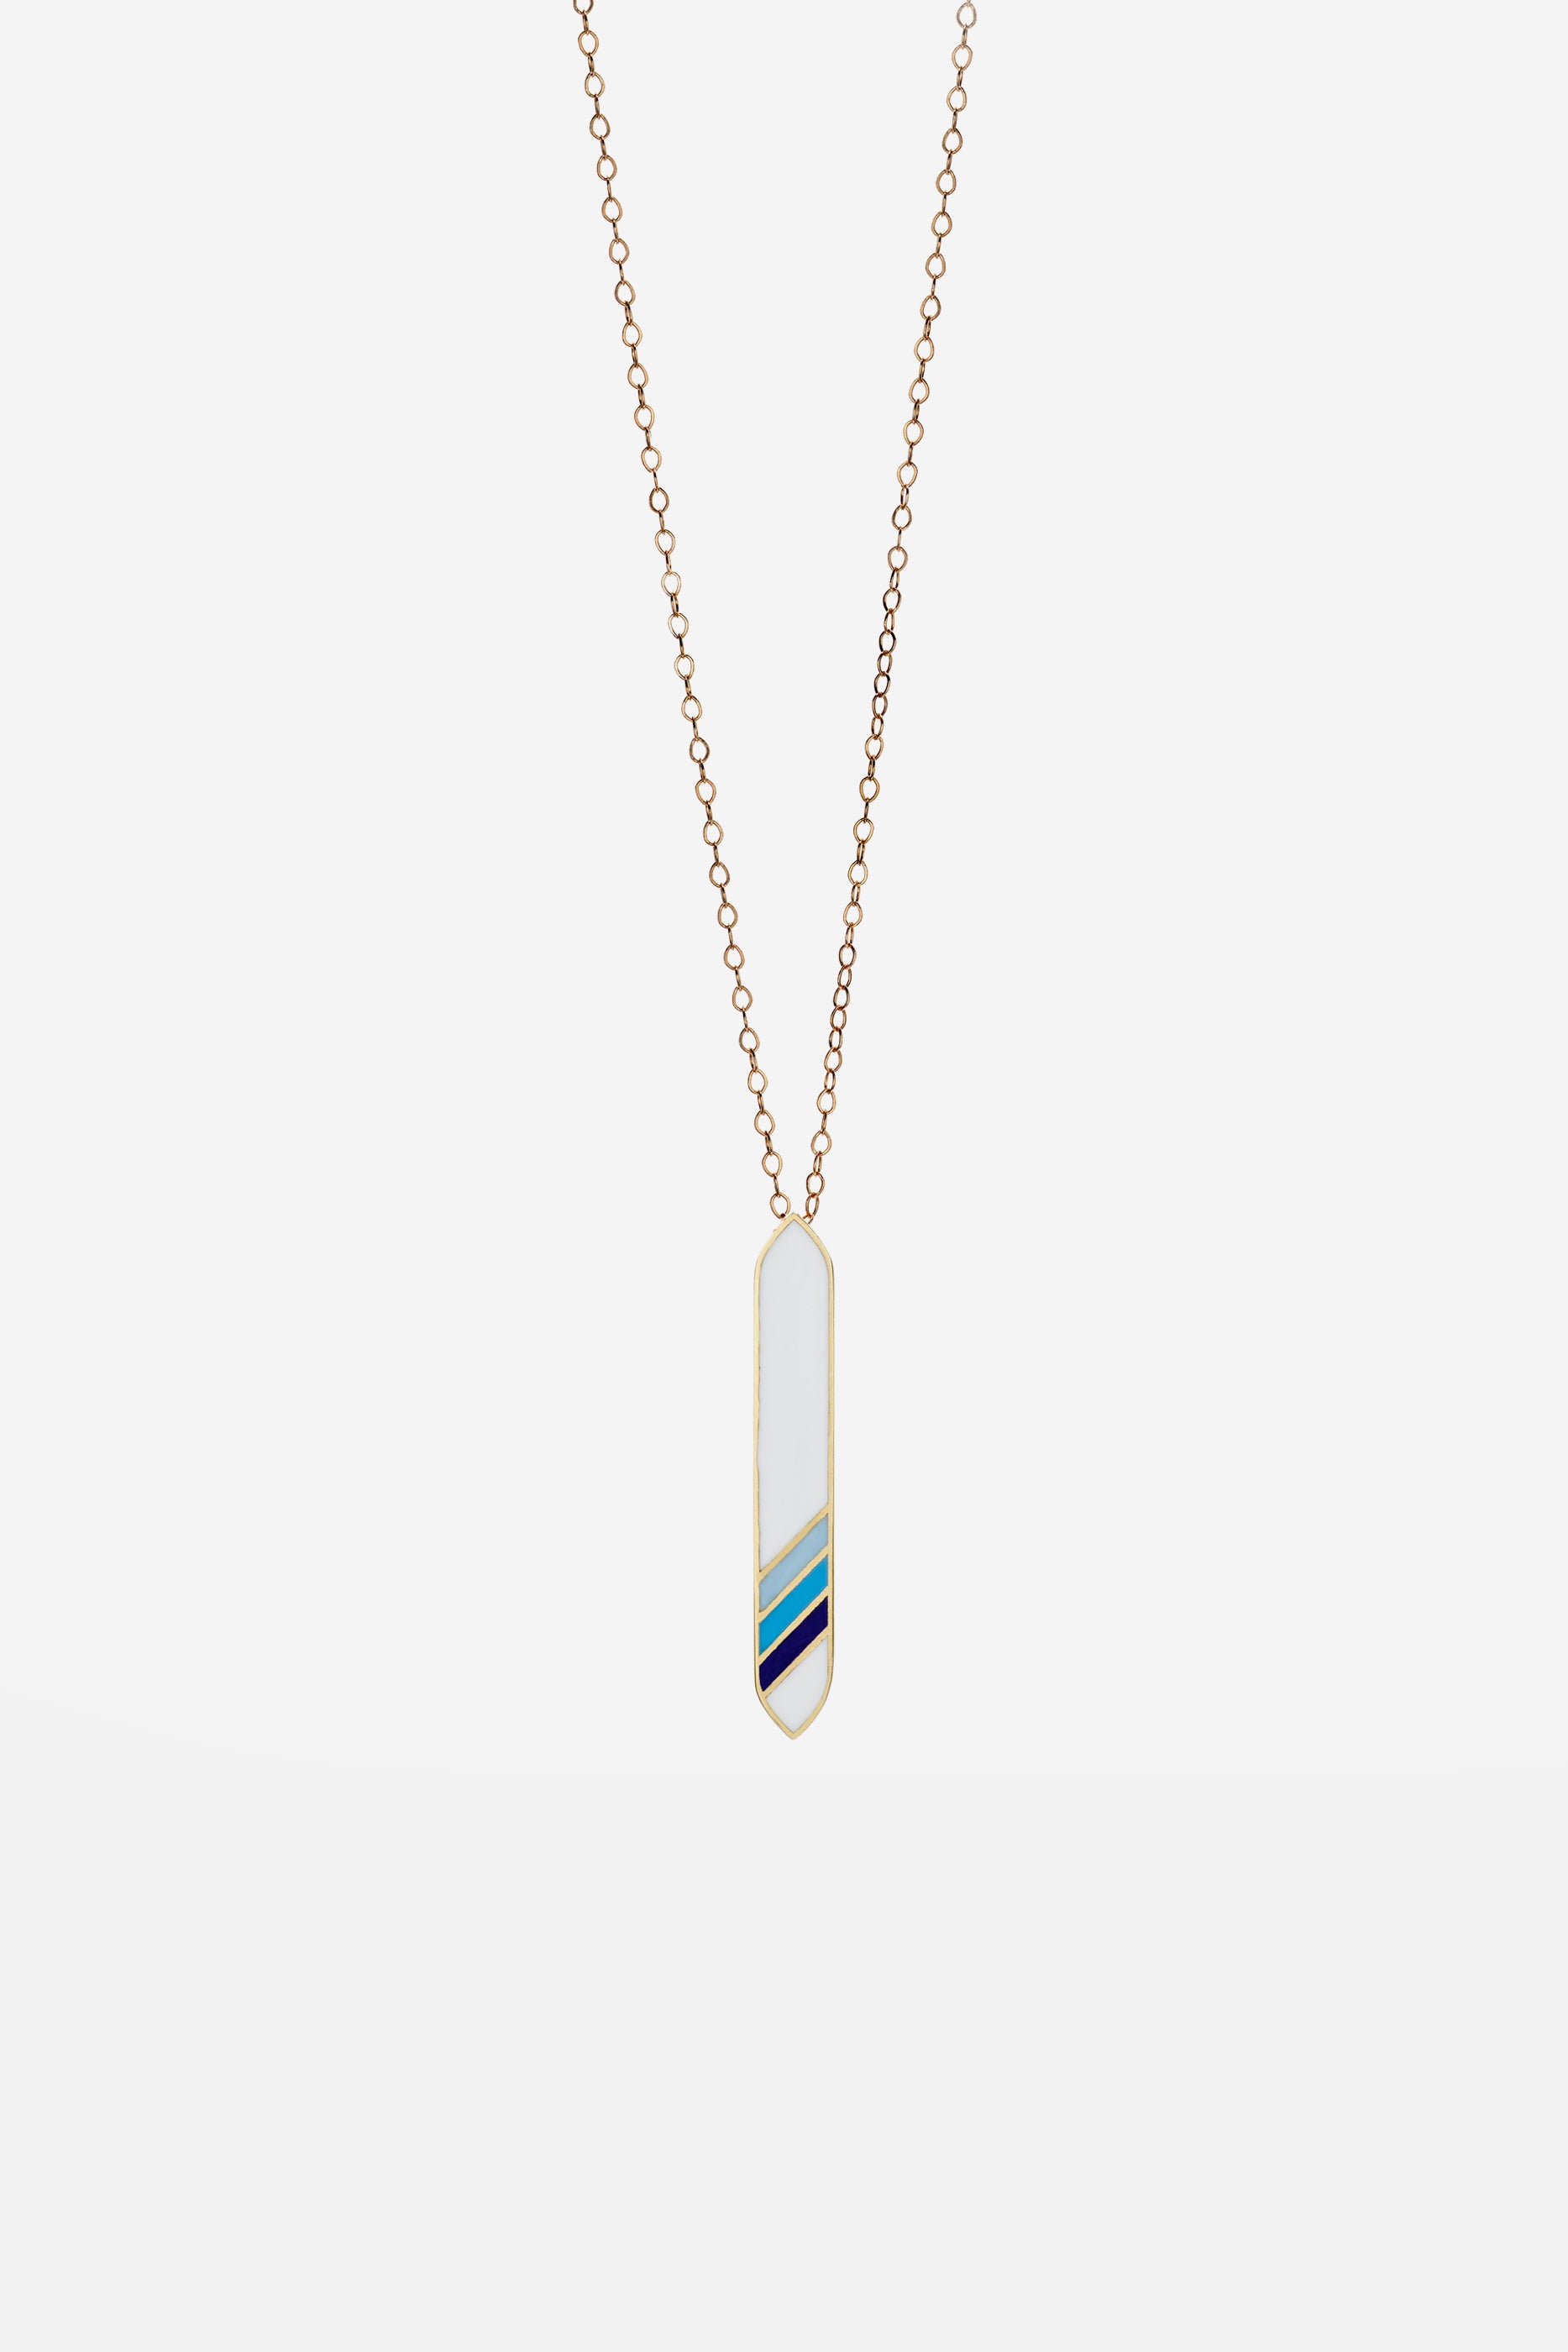 Surf Goddess Zuma Necklace